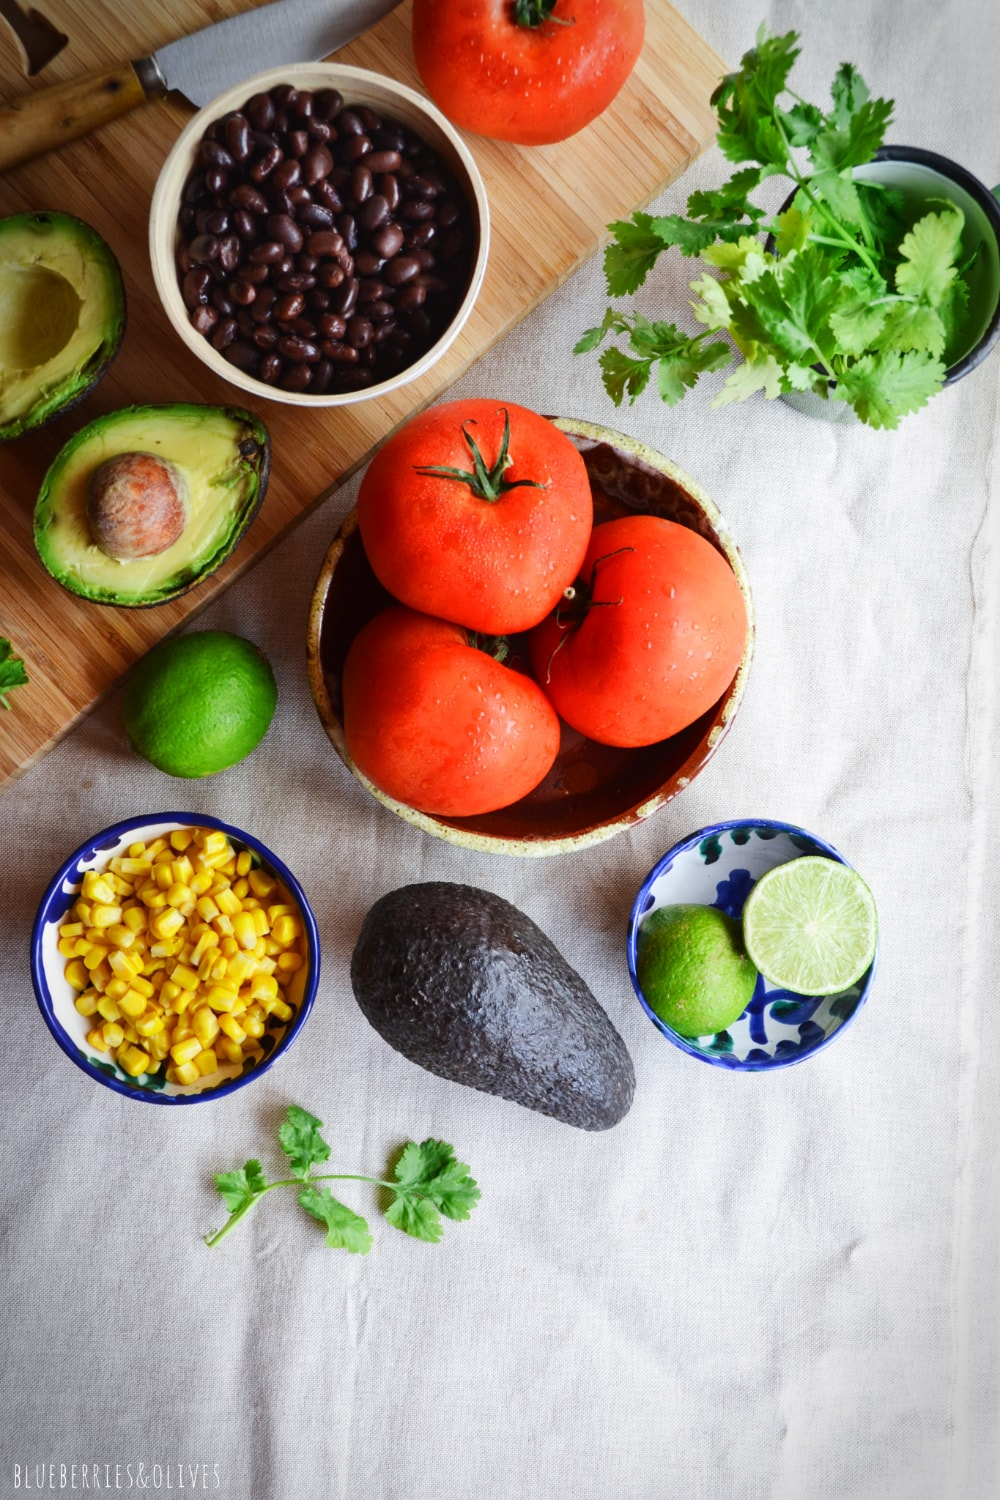 INGREDIENTS STUFFED TOMATOES, CORN, AVOCADO, LIME WEDGES, CILANTRO LEAVES, BLACK BEANS